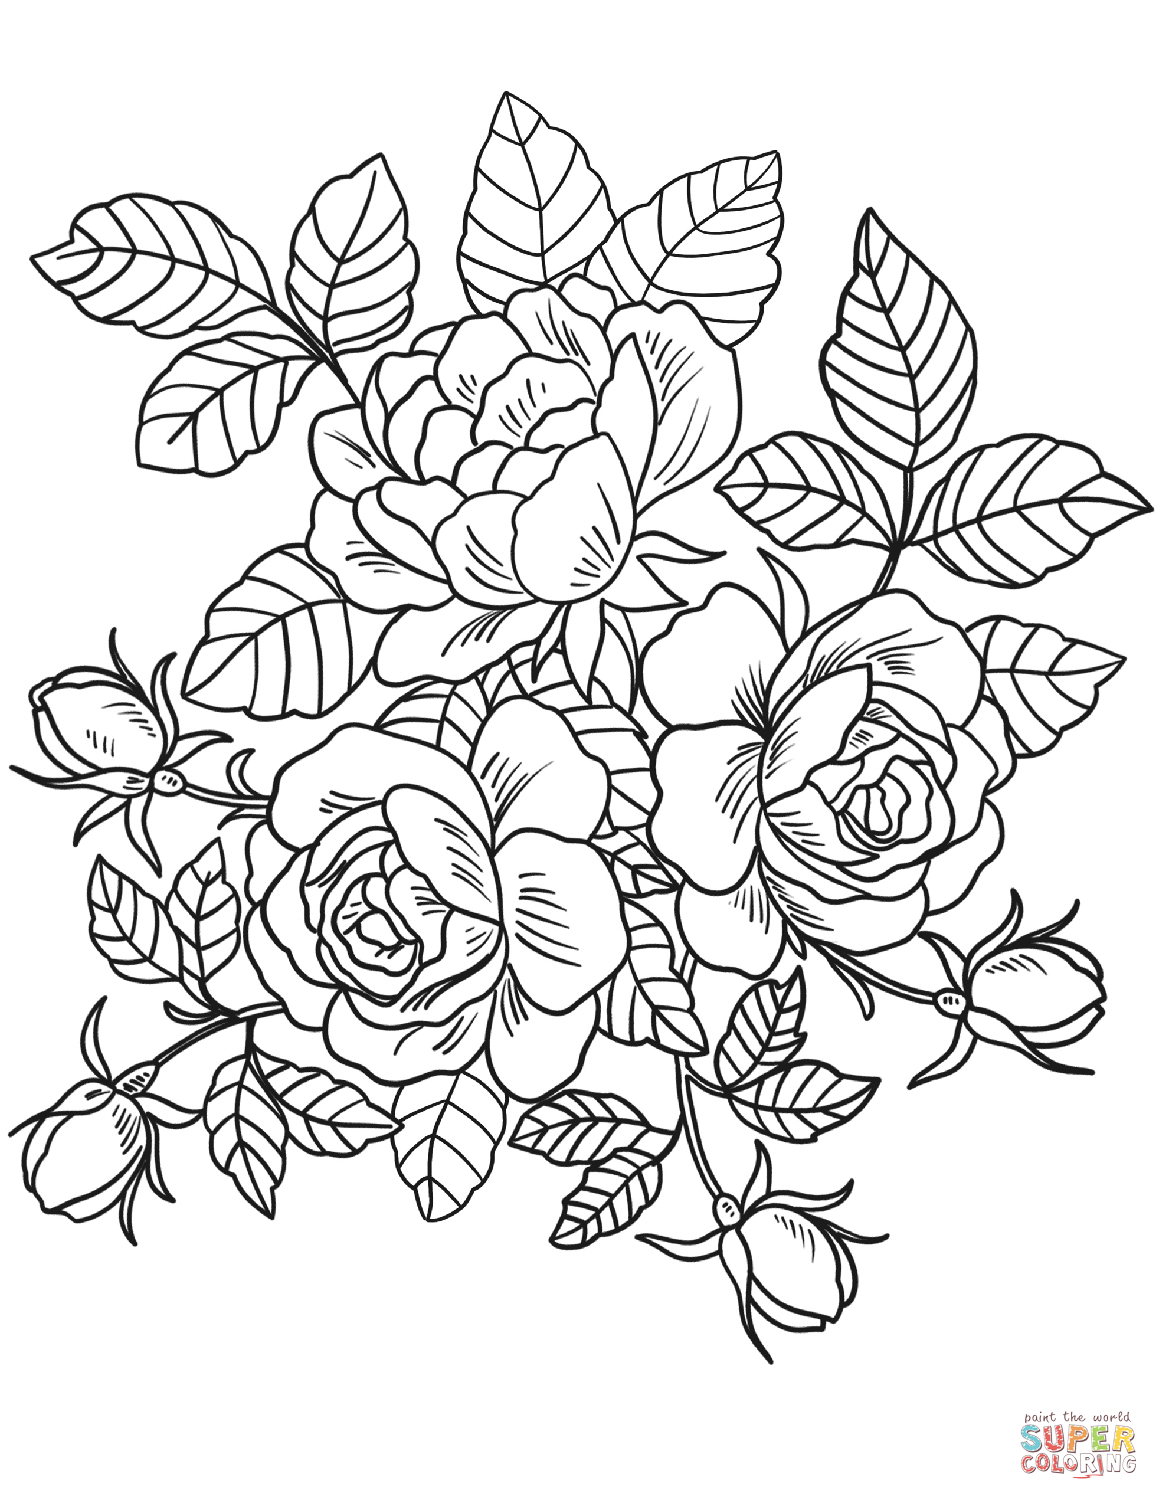 Roses Flowers Coloring Page | Free Printable Coloring Pages - Free Printable Coloring Pages